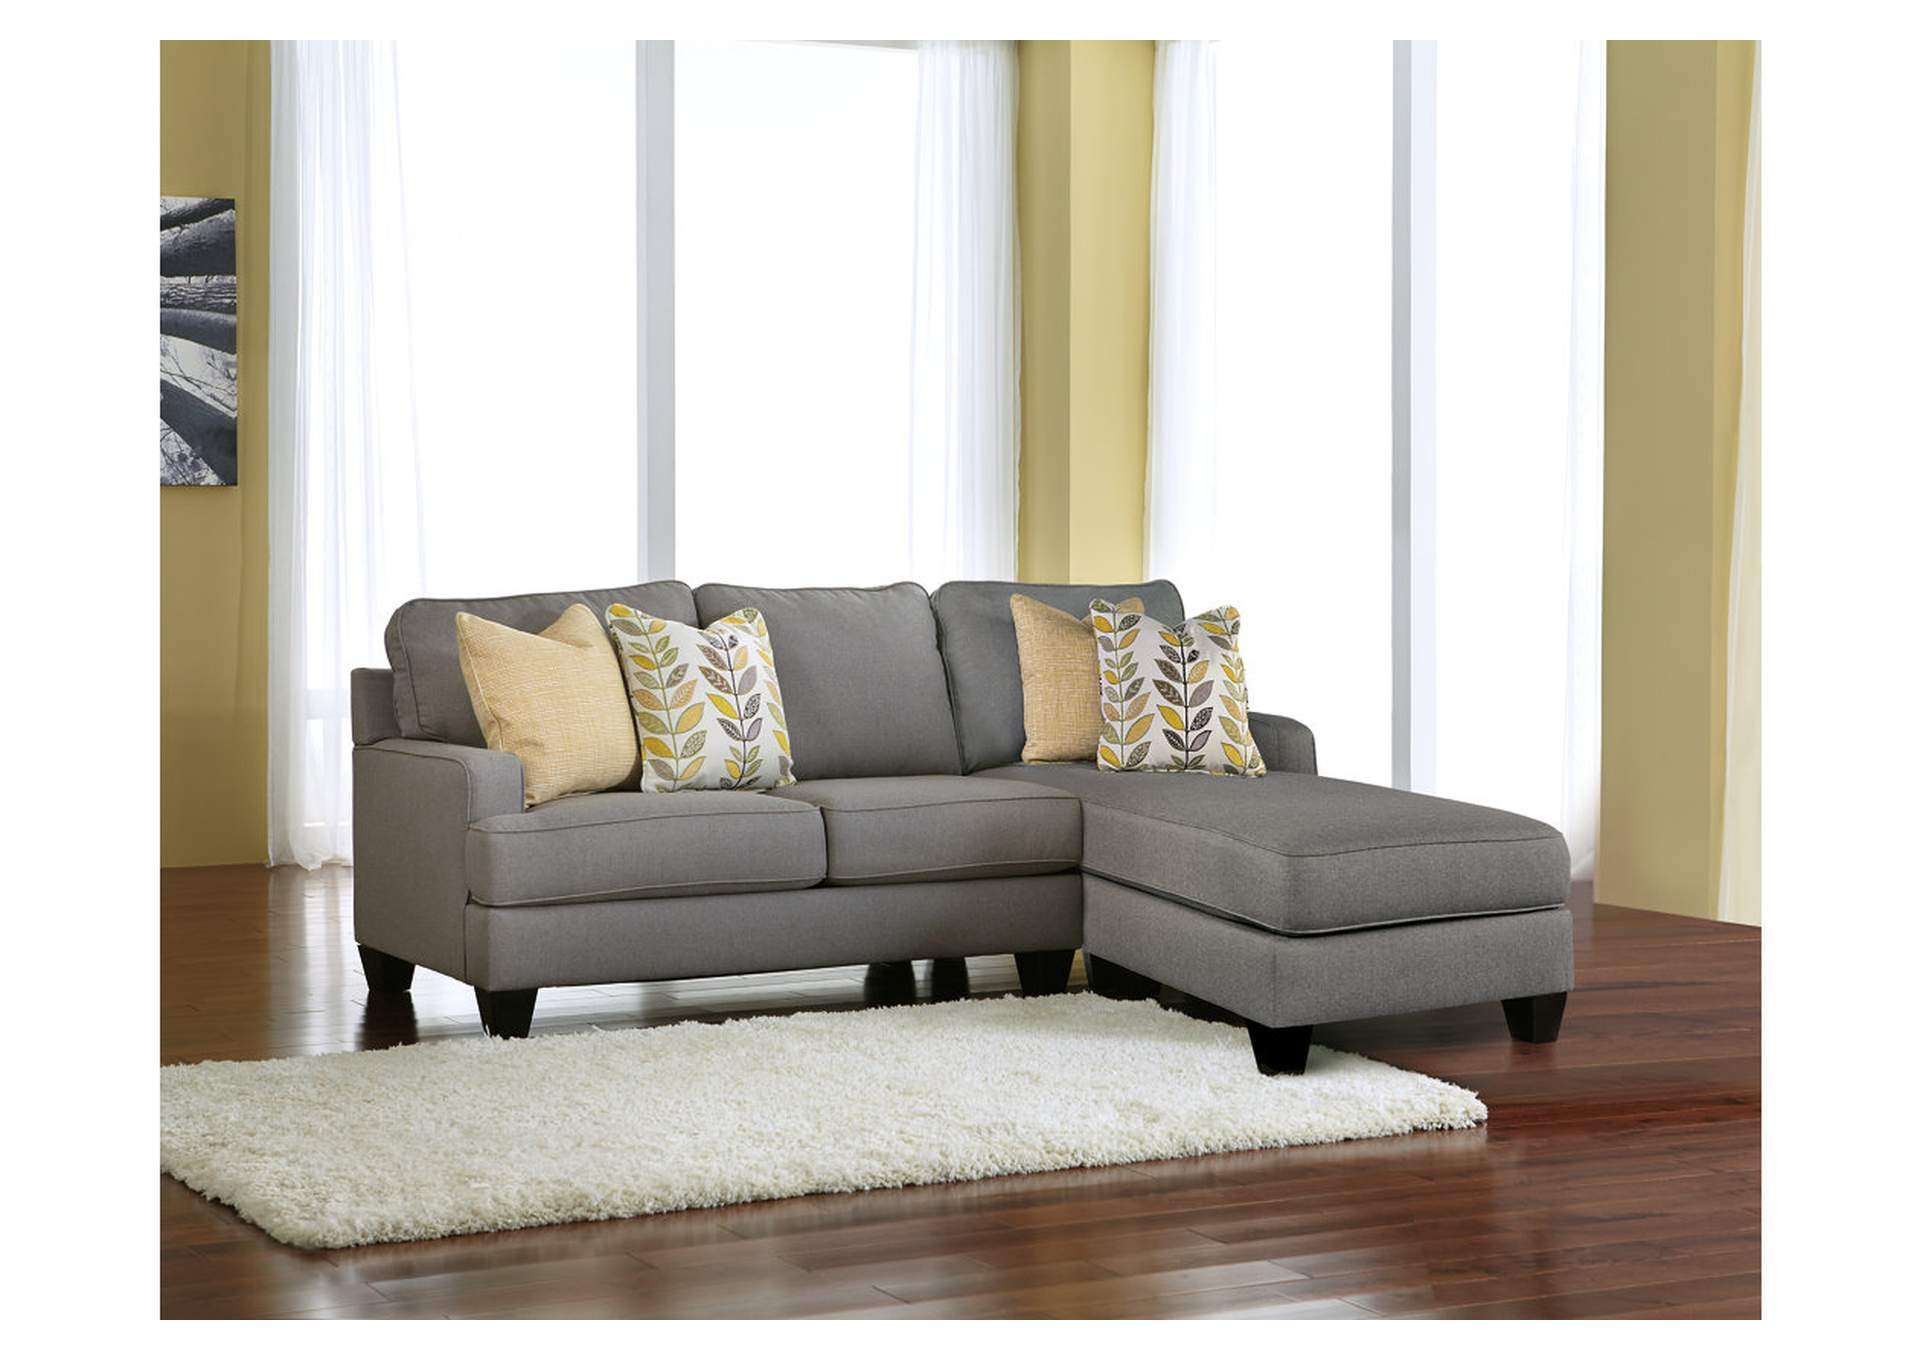 Alabama furniture market chamberly alloy chaise end sectional for Ashley microfiber sectional with chaise